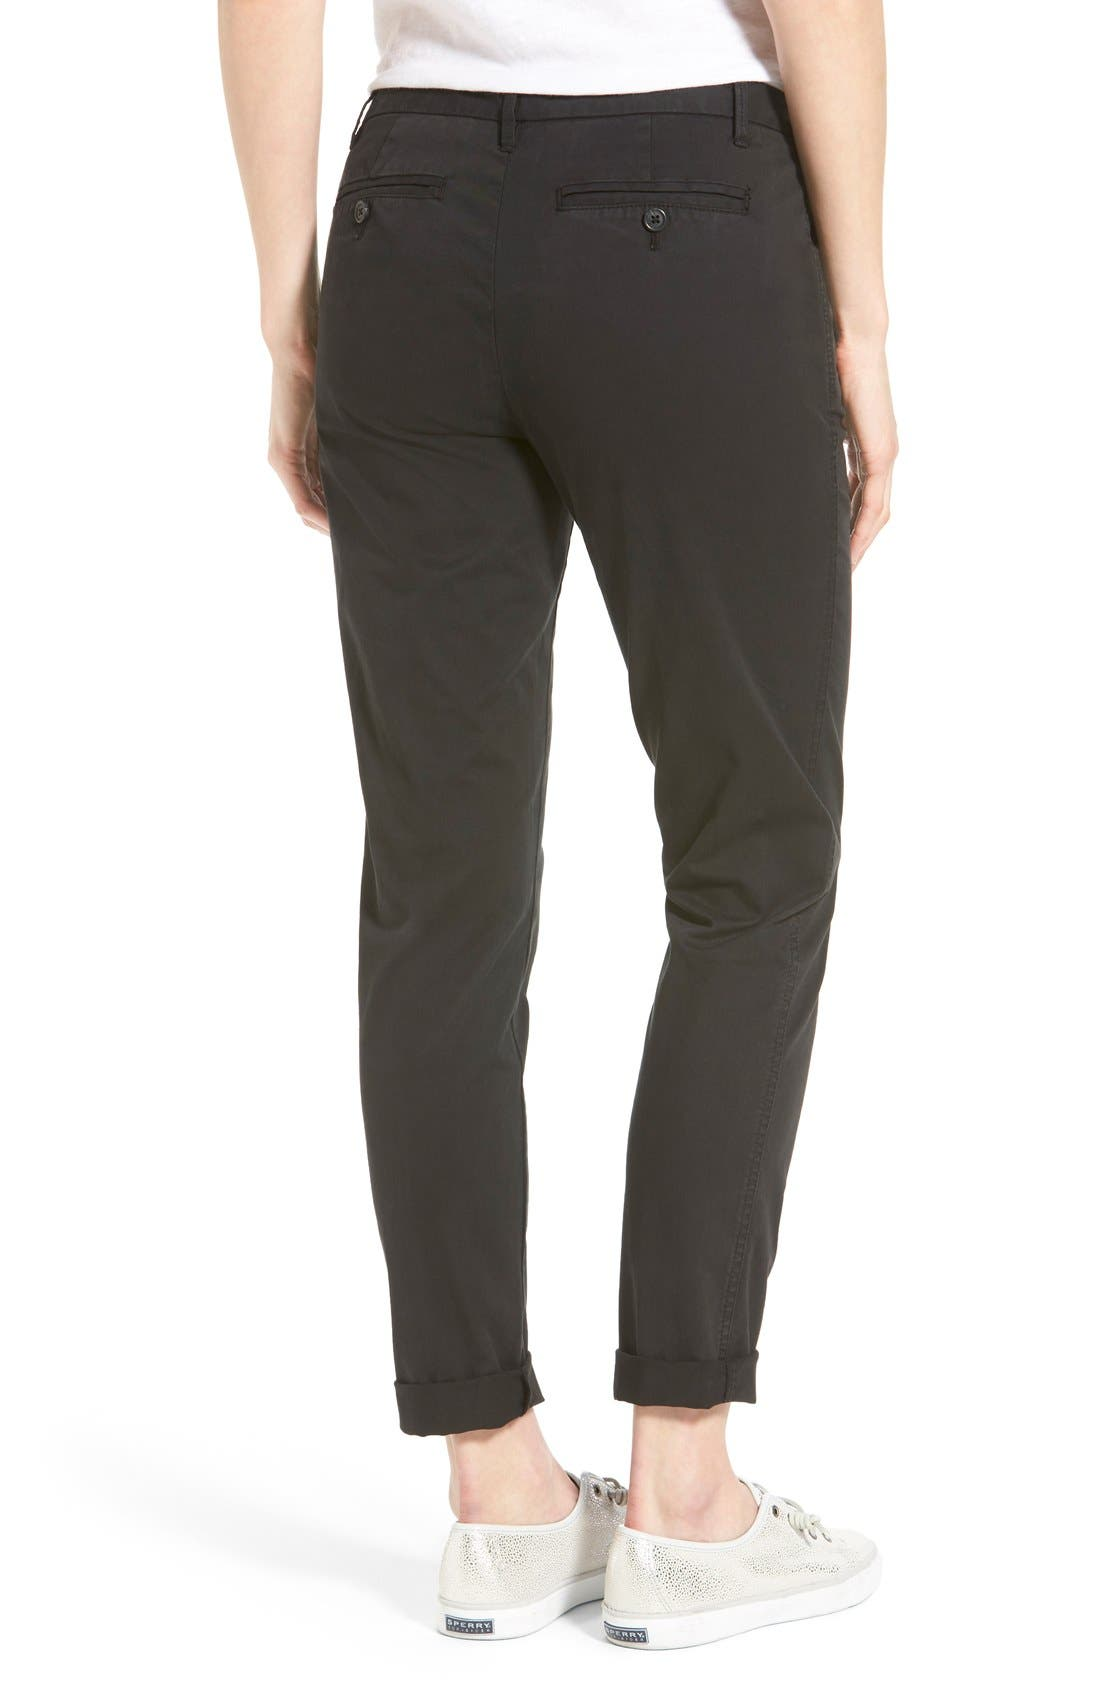 Chino Ankle Pants,                             Alternate thumbnail 5, color,                             001